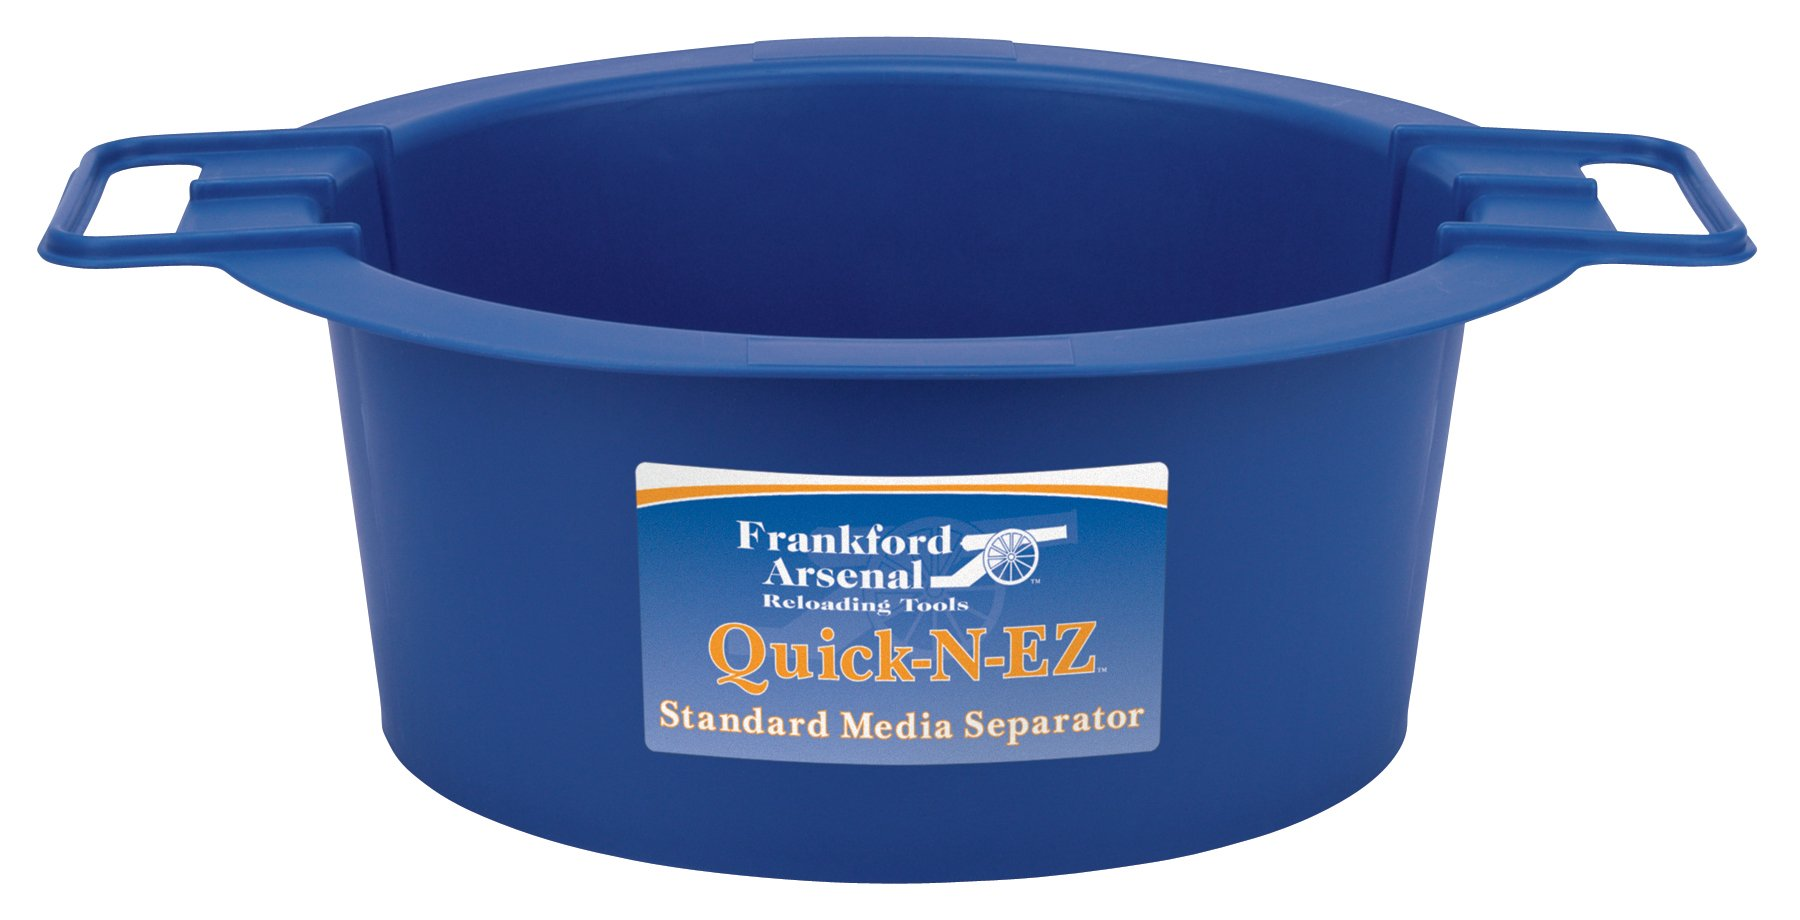 Frankford Arsenal Quick-N-EZ Standard Media Separator for Reloading by Frankford Arsenal